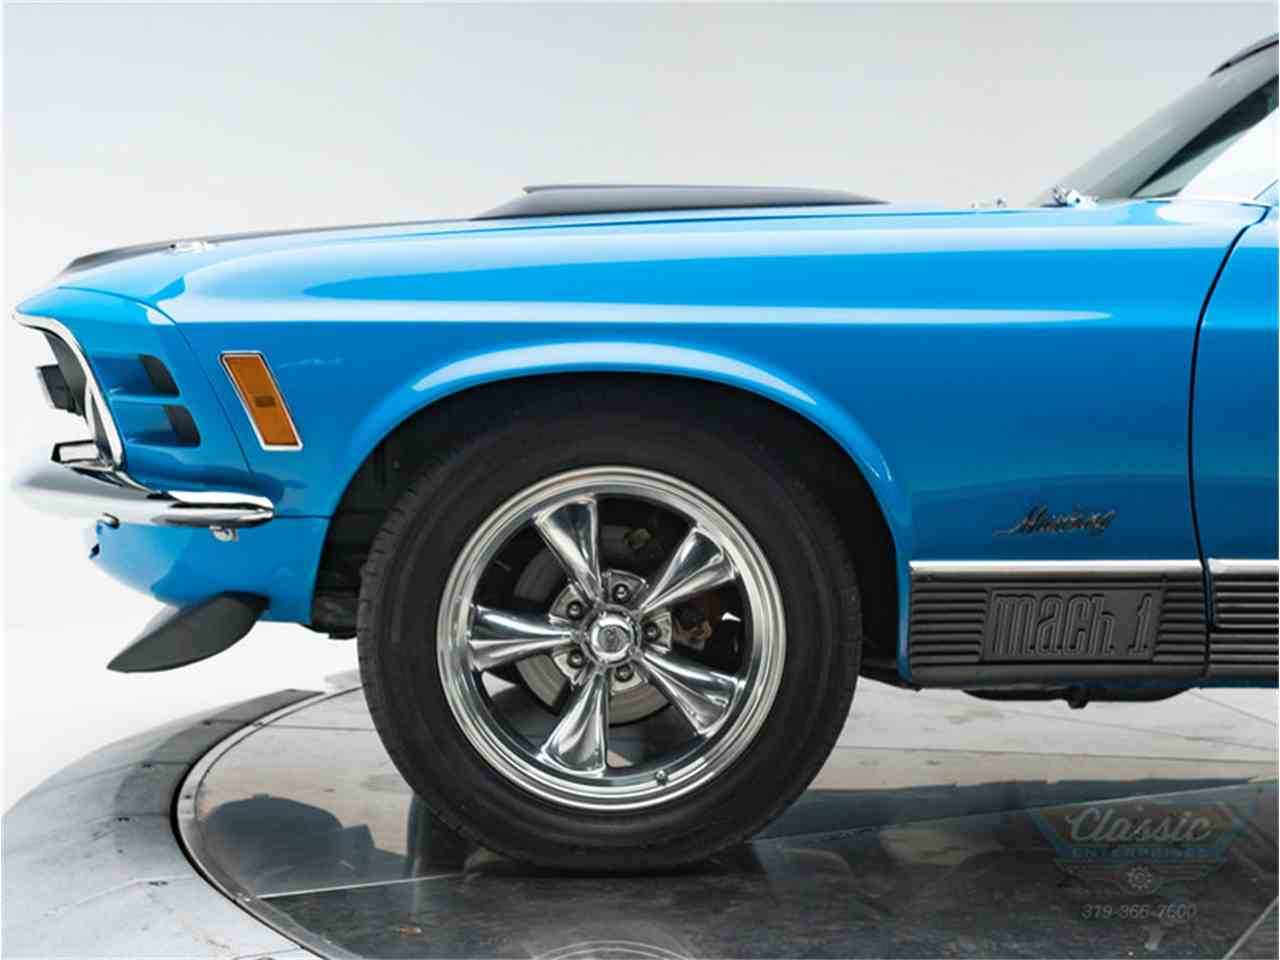 Large Picture of Classic '70 Mustang Mach 1 located in Cedar Rapids Iowa - $42,950.00 Offered by Classic Enterprises - LWJF